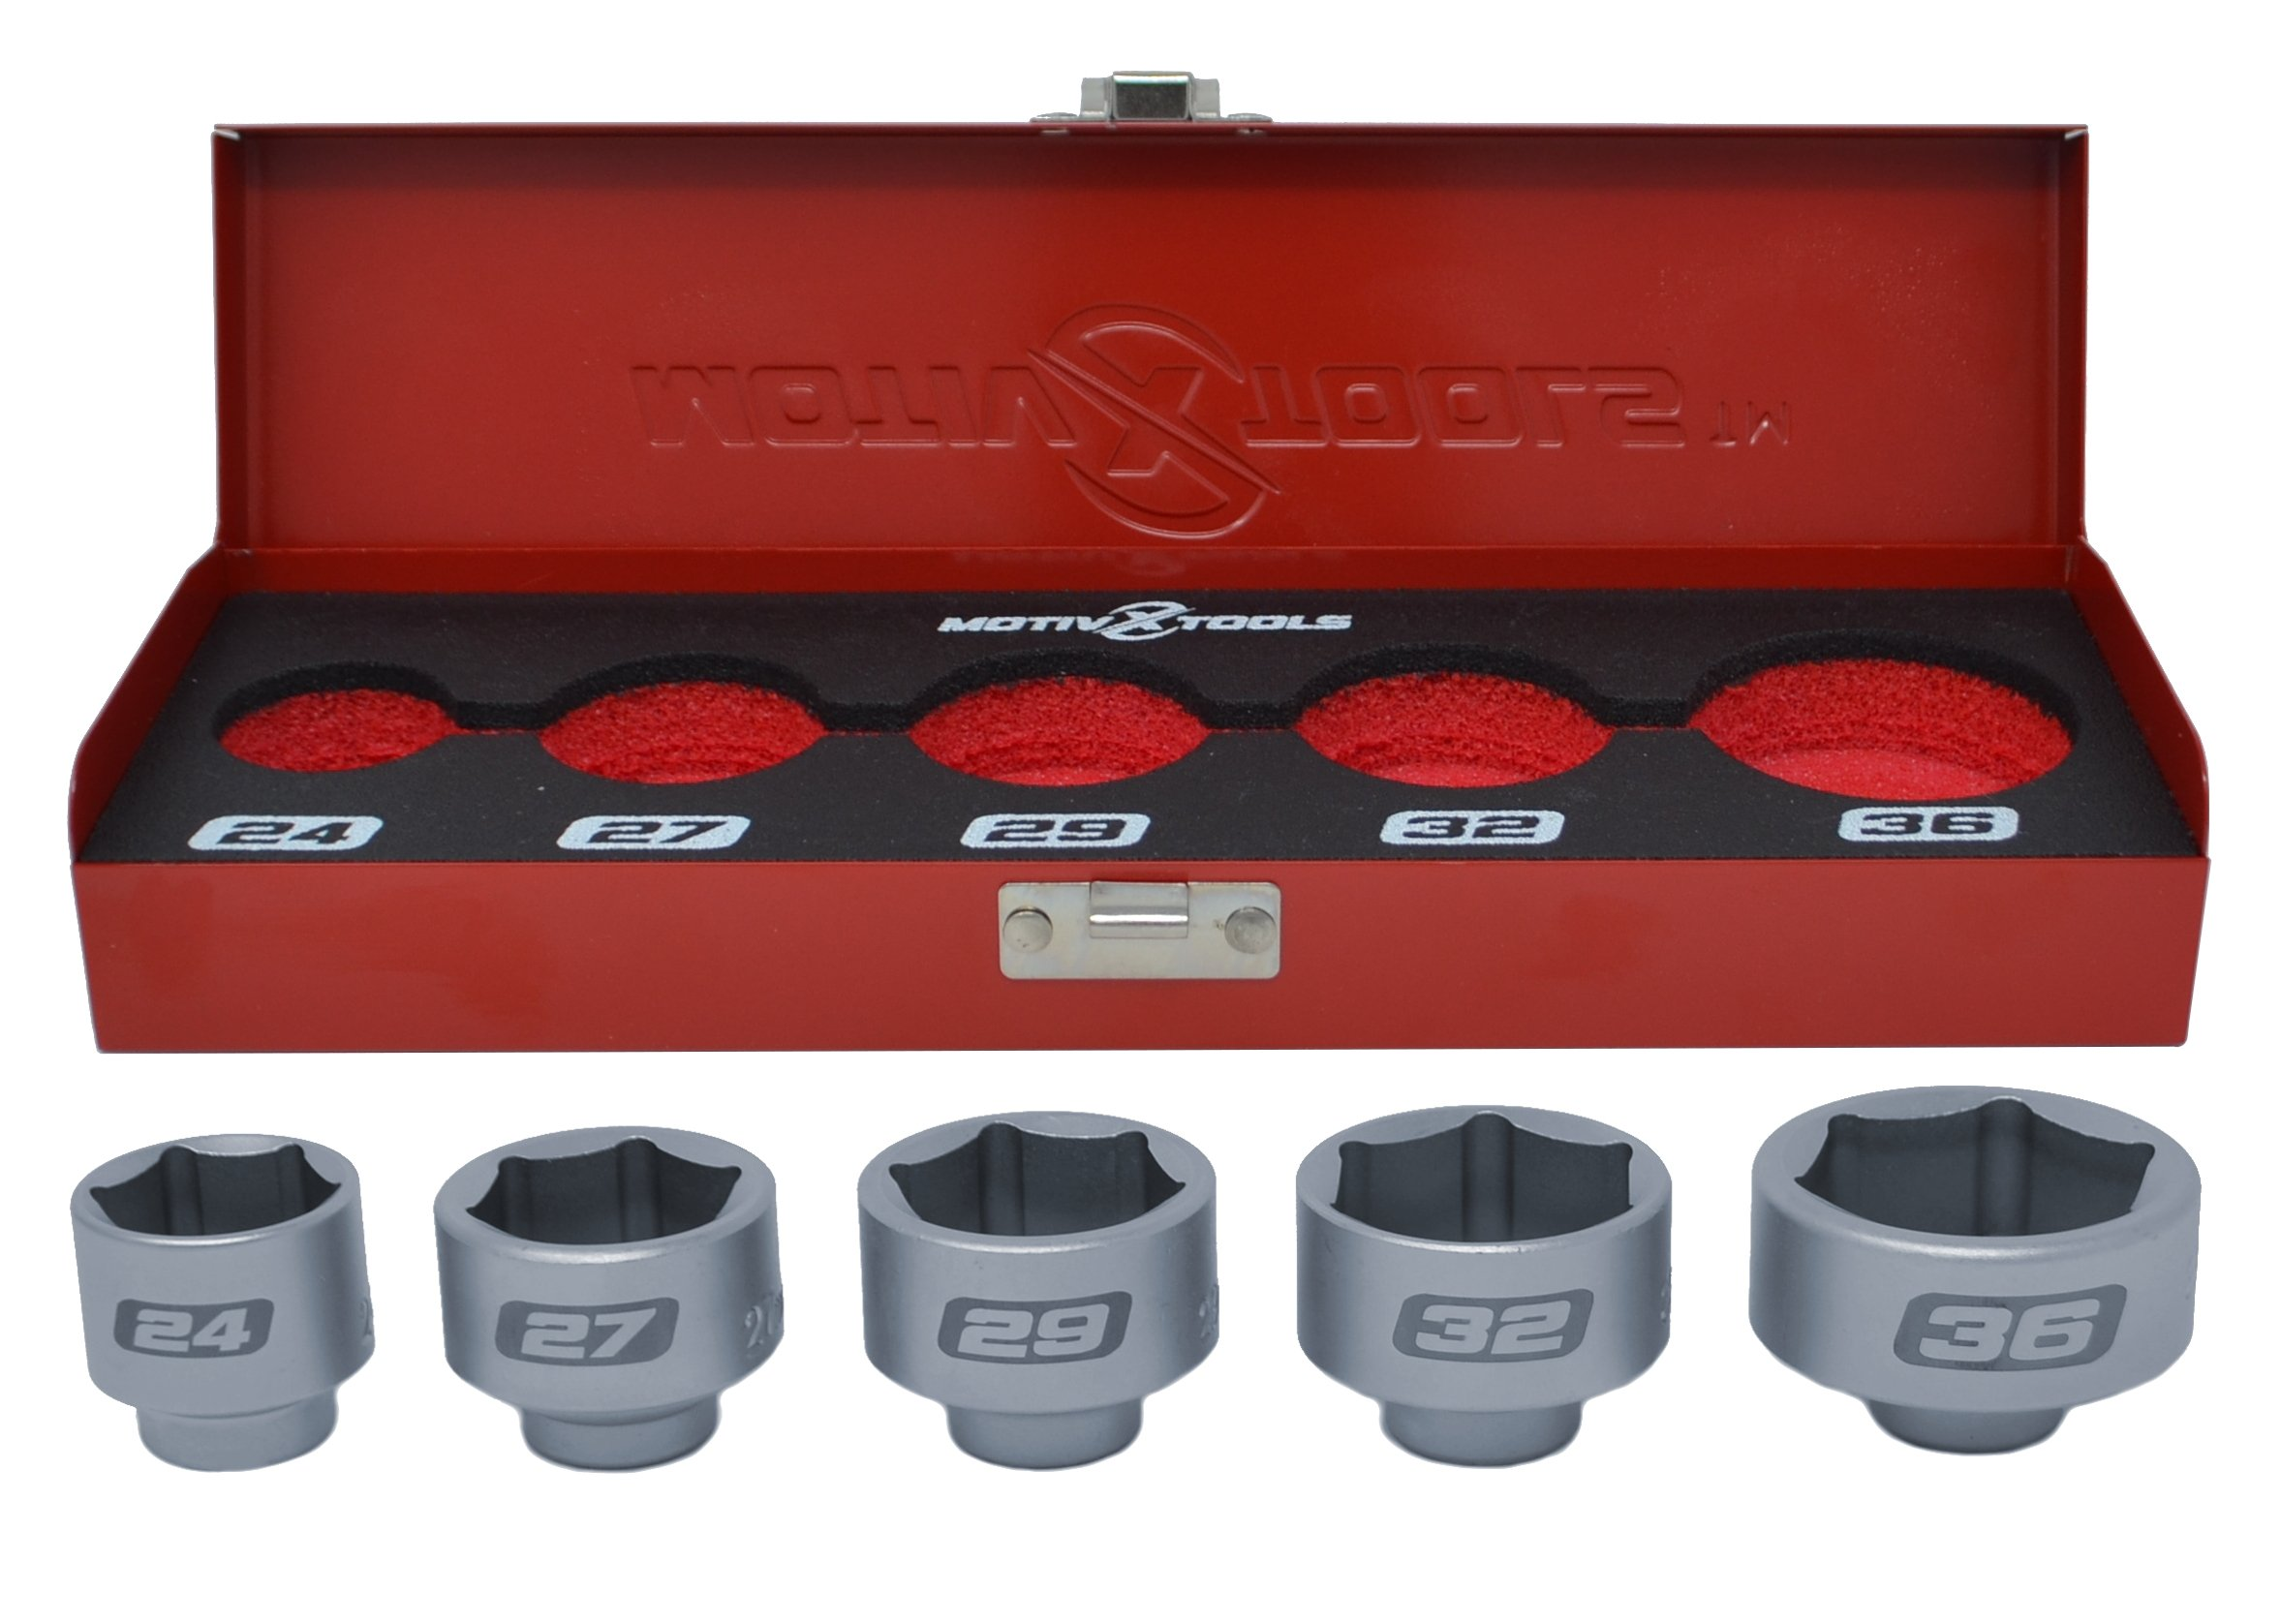 Motivx Tools 5pc Cartridge Style Oil Filter Socket Set - Includes 24mm, 27mm, 29mm, 32mm, and 36mm - In Metal Case